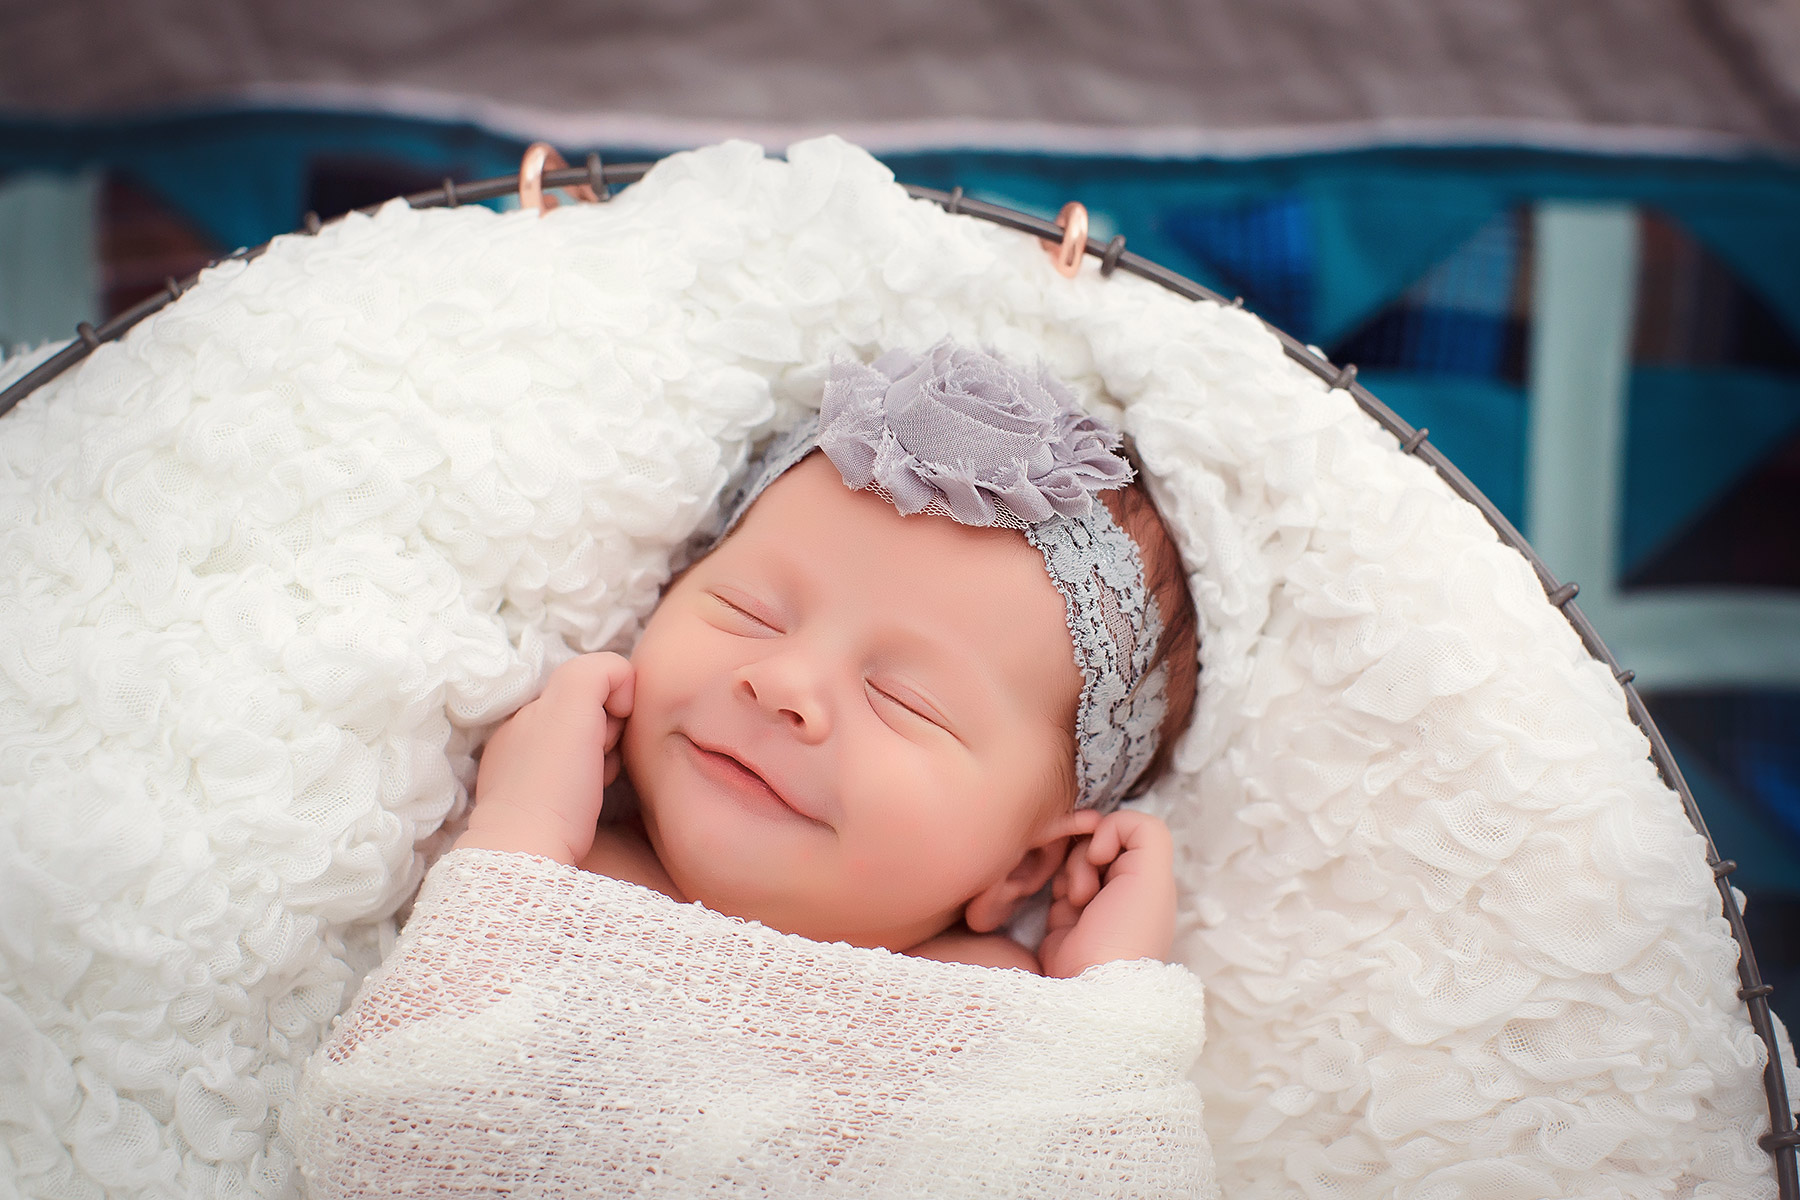 Newborn-photographers-maternity-photographers-berks-county-pa_U